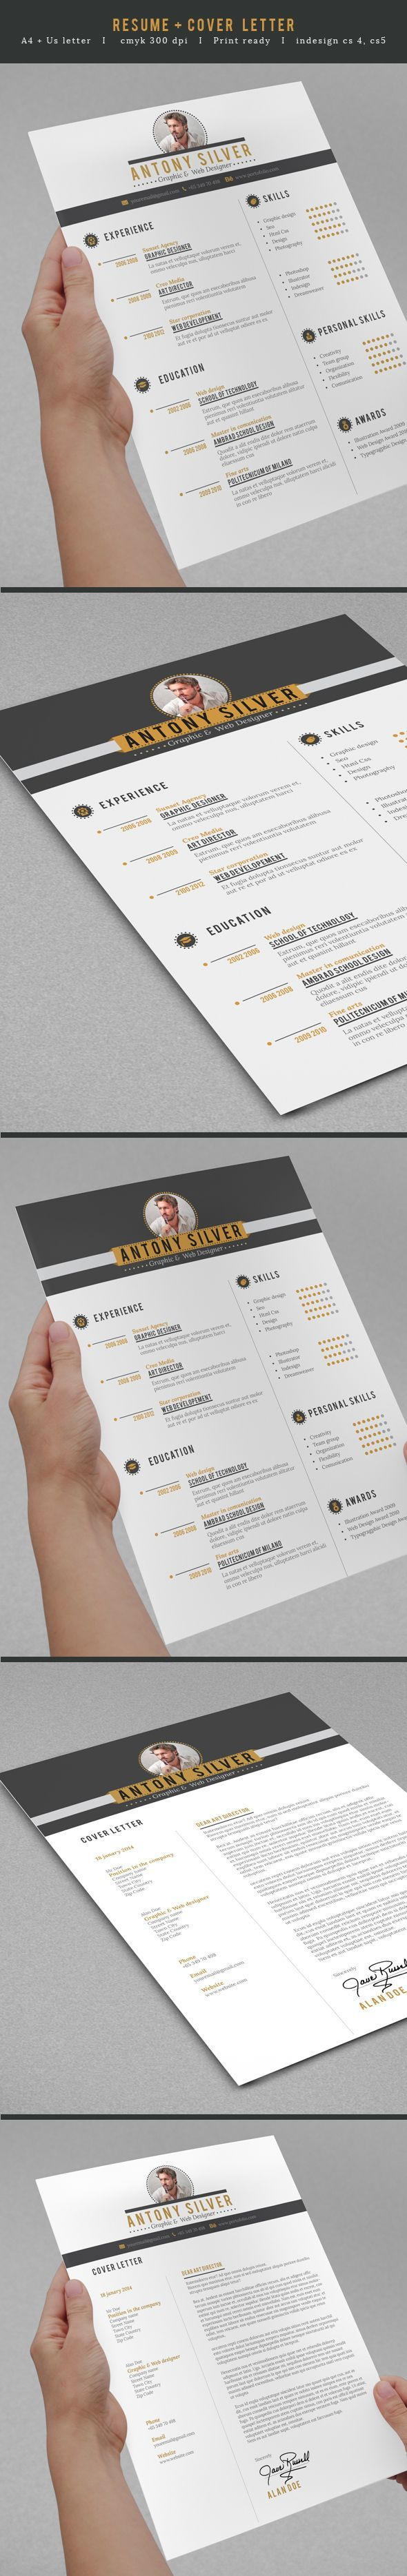 Pretty clean and well formatted resume. For more great #resume ideas, click here.